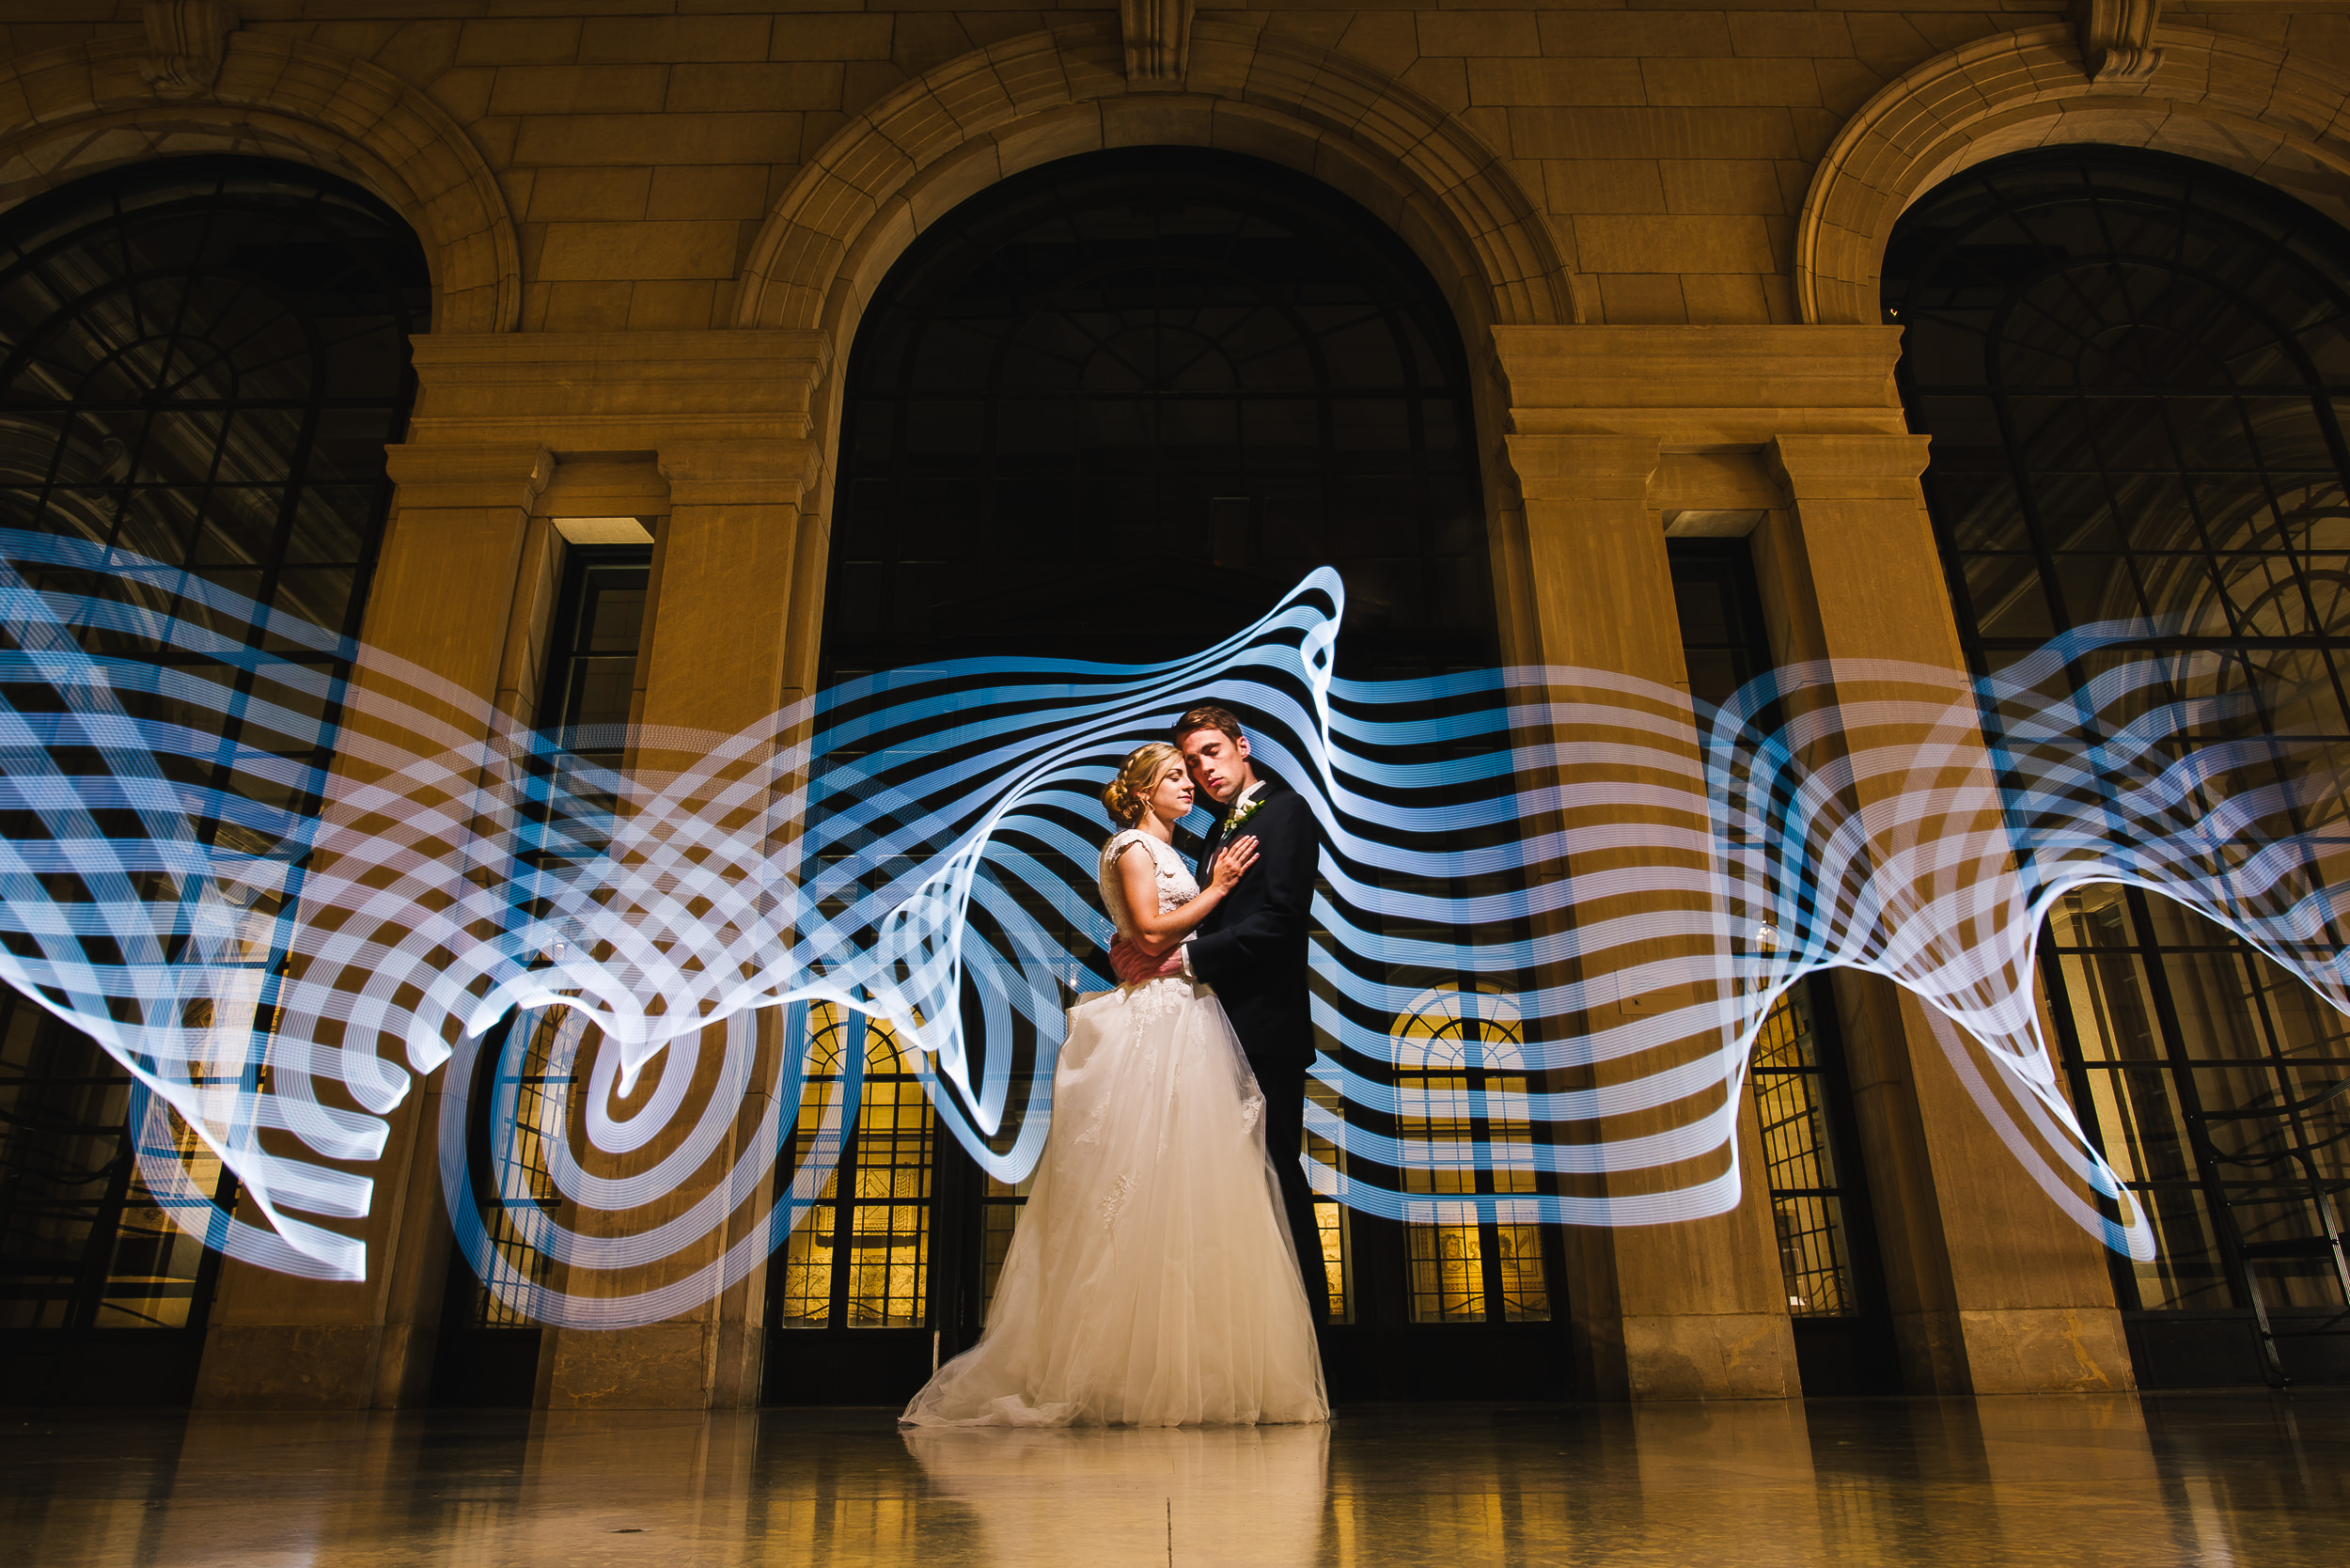 Bride and groom portrait with light painting - photo by Adibe Photography